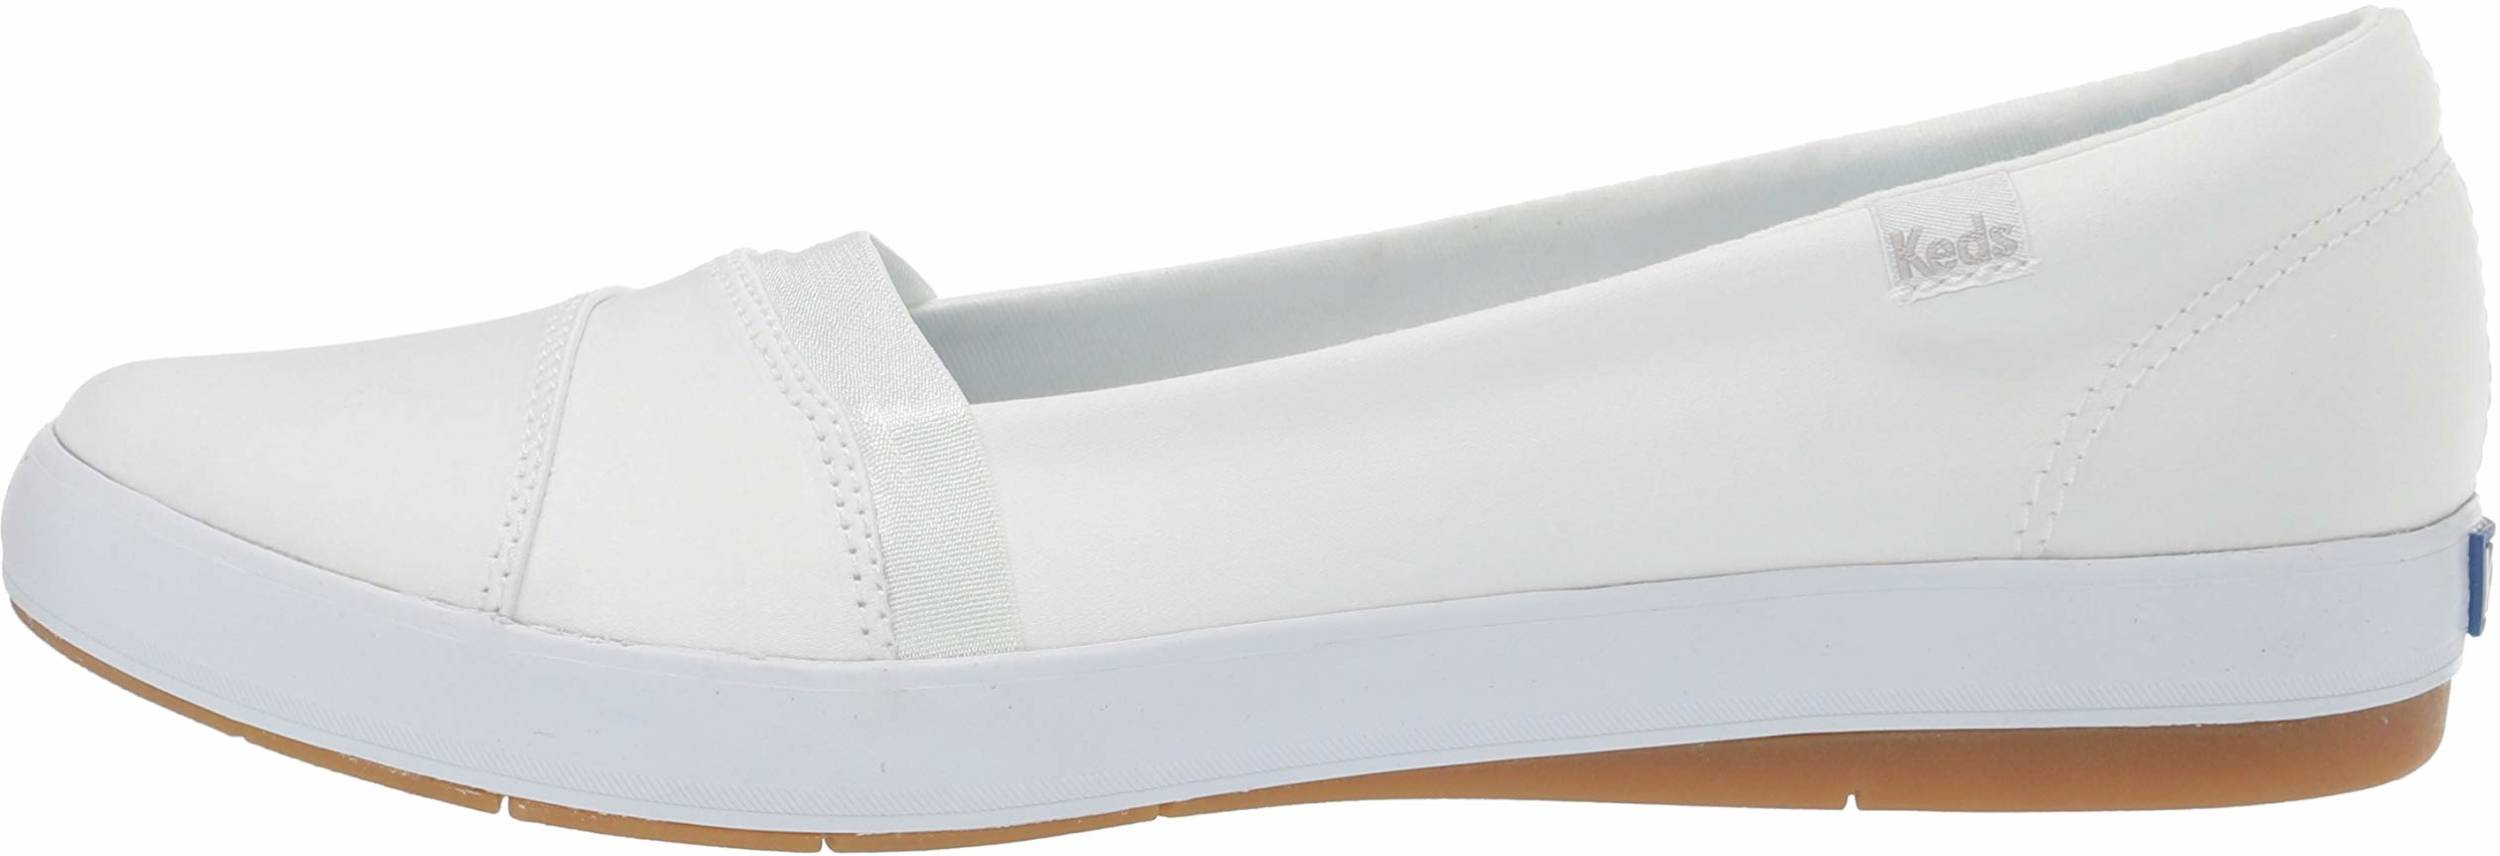 Only $25 + Review of Keds Carmel